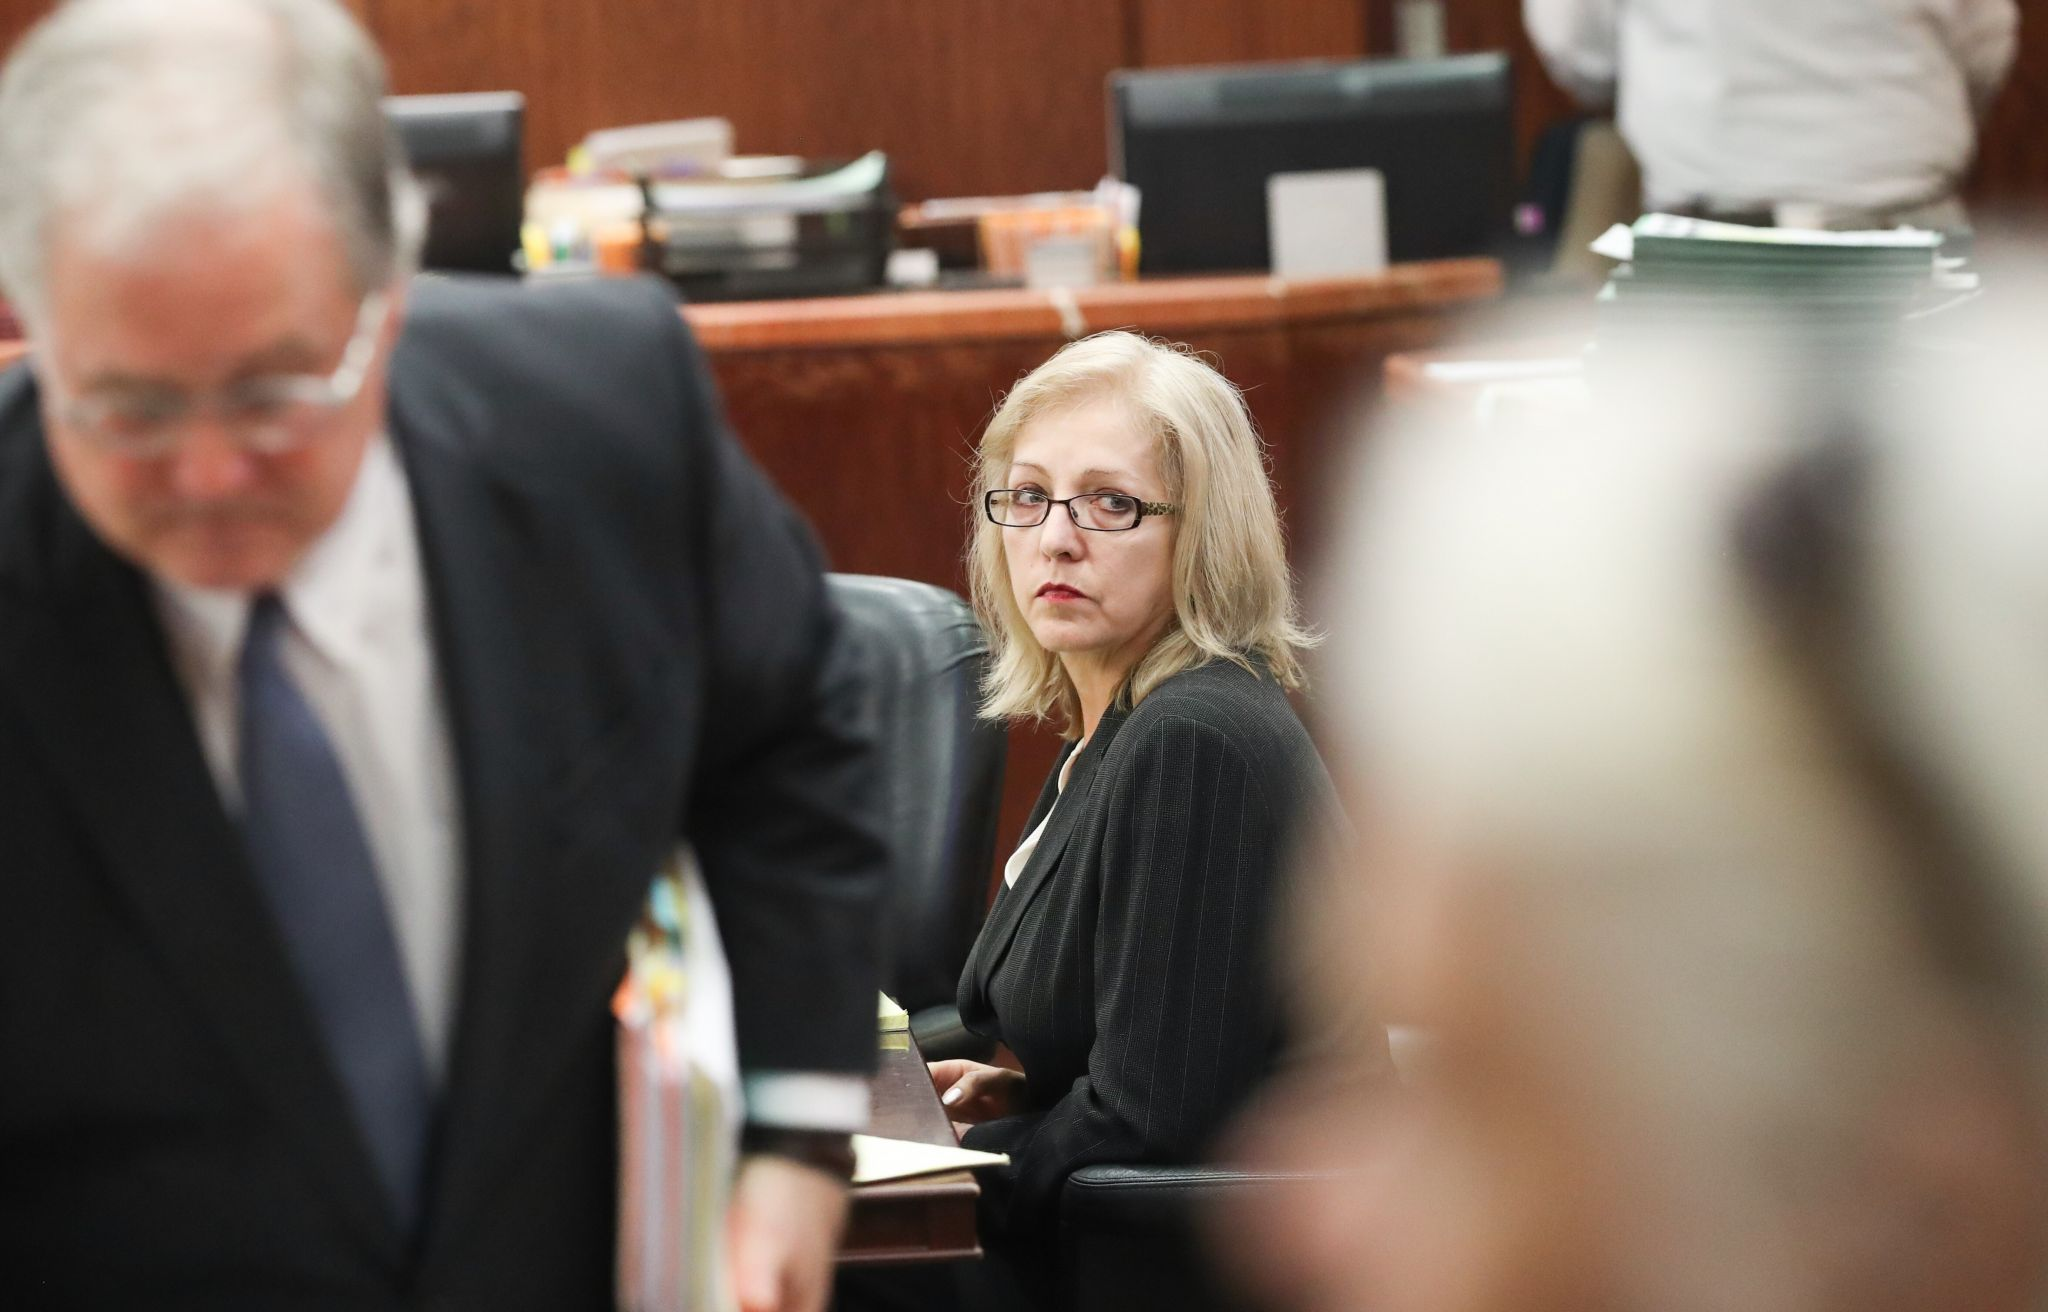 houston woman convicted of murdering her husband subject of